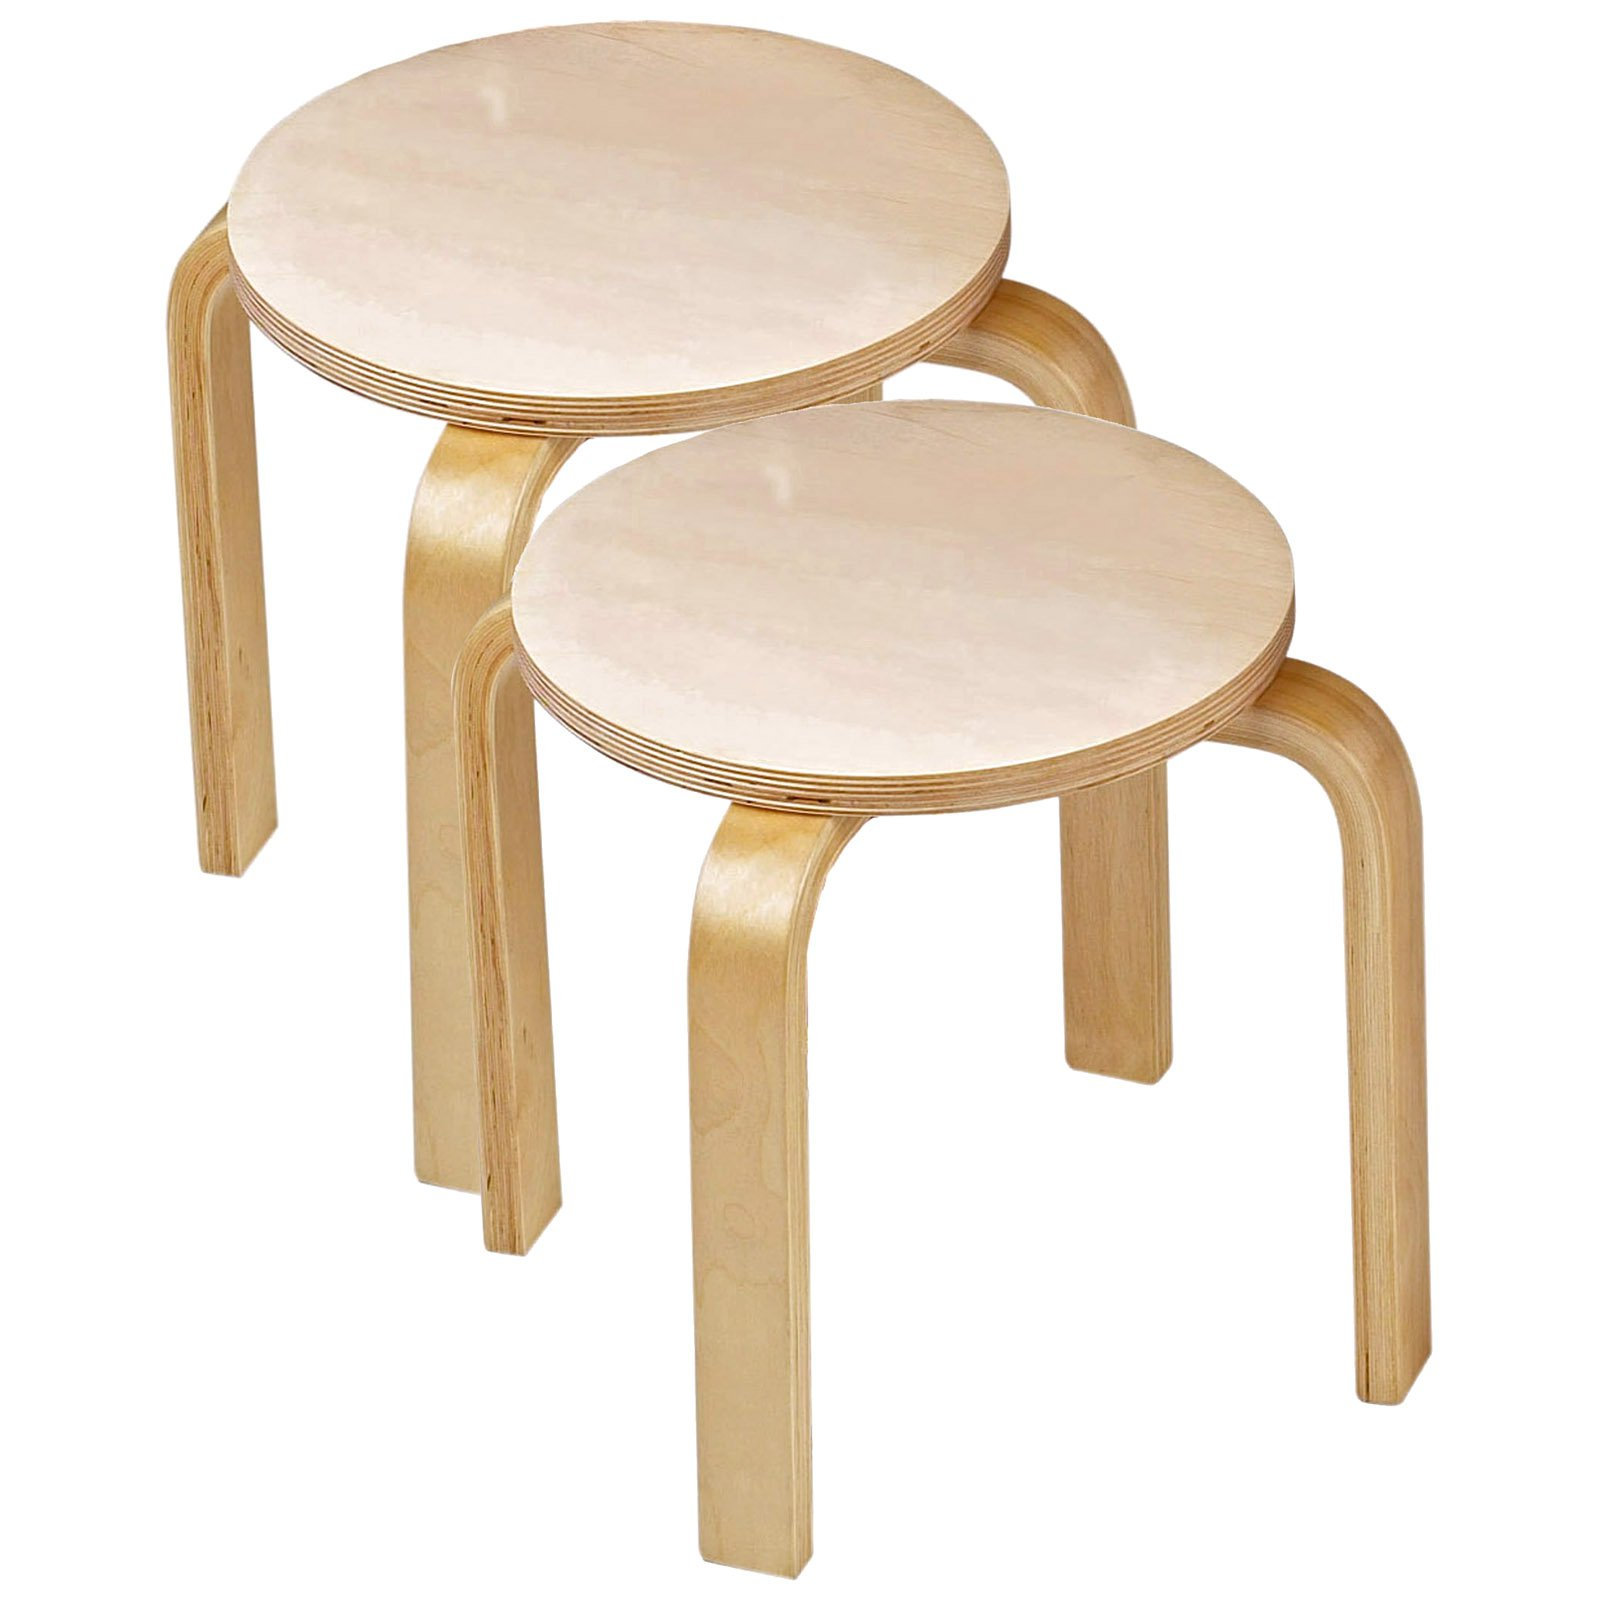 Small Sitting Stools Small Stools To Sit On Atcsagacity